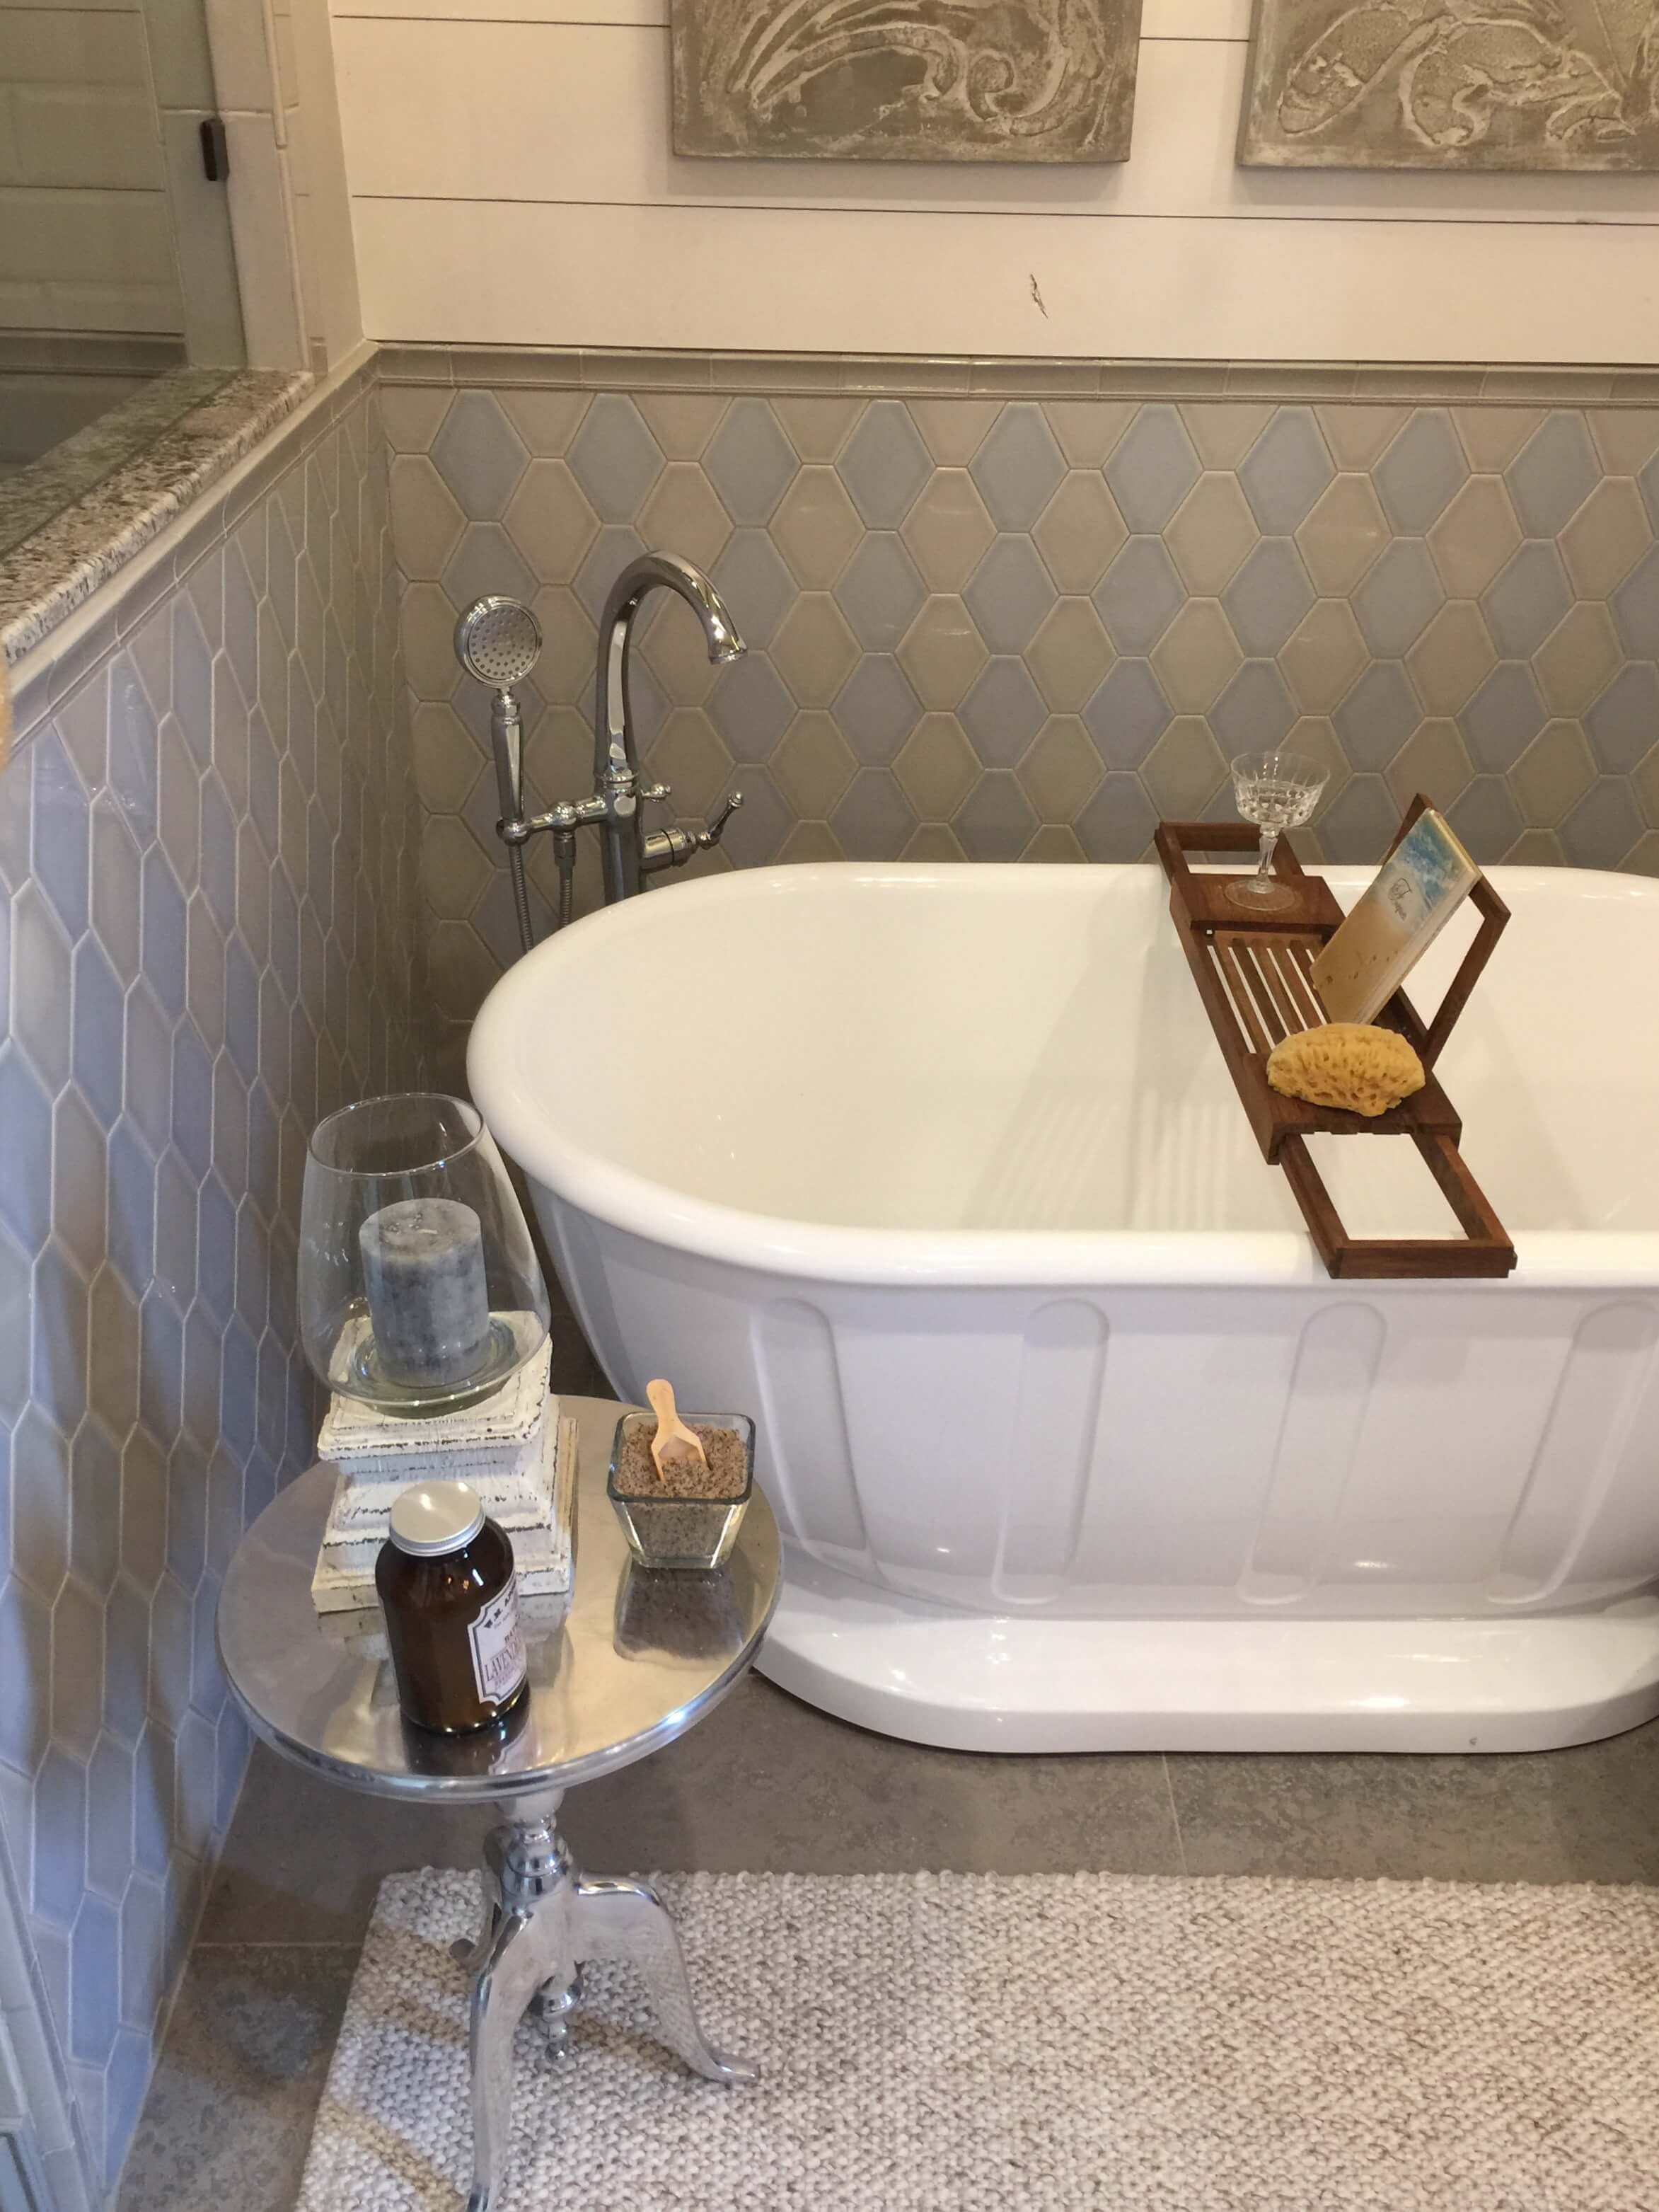 Free standing tub with small table for bath accessories -  ASID Showcase Home 2017